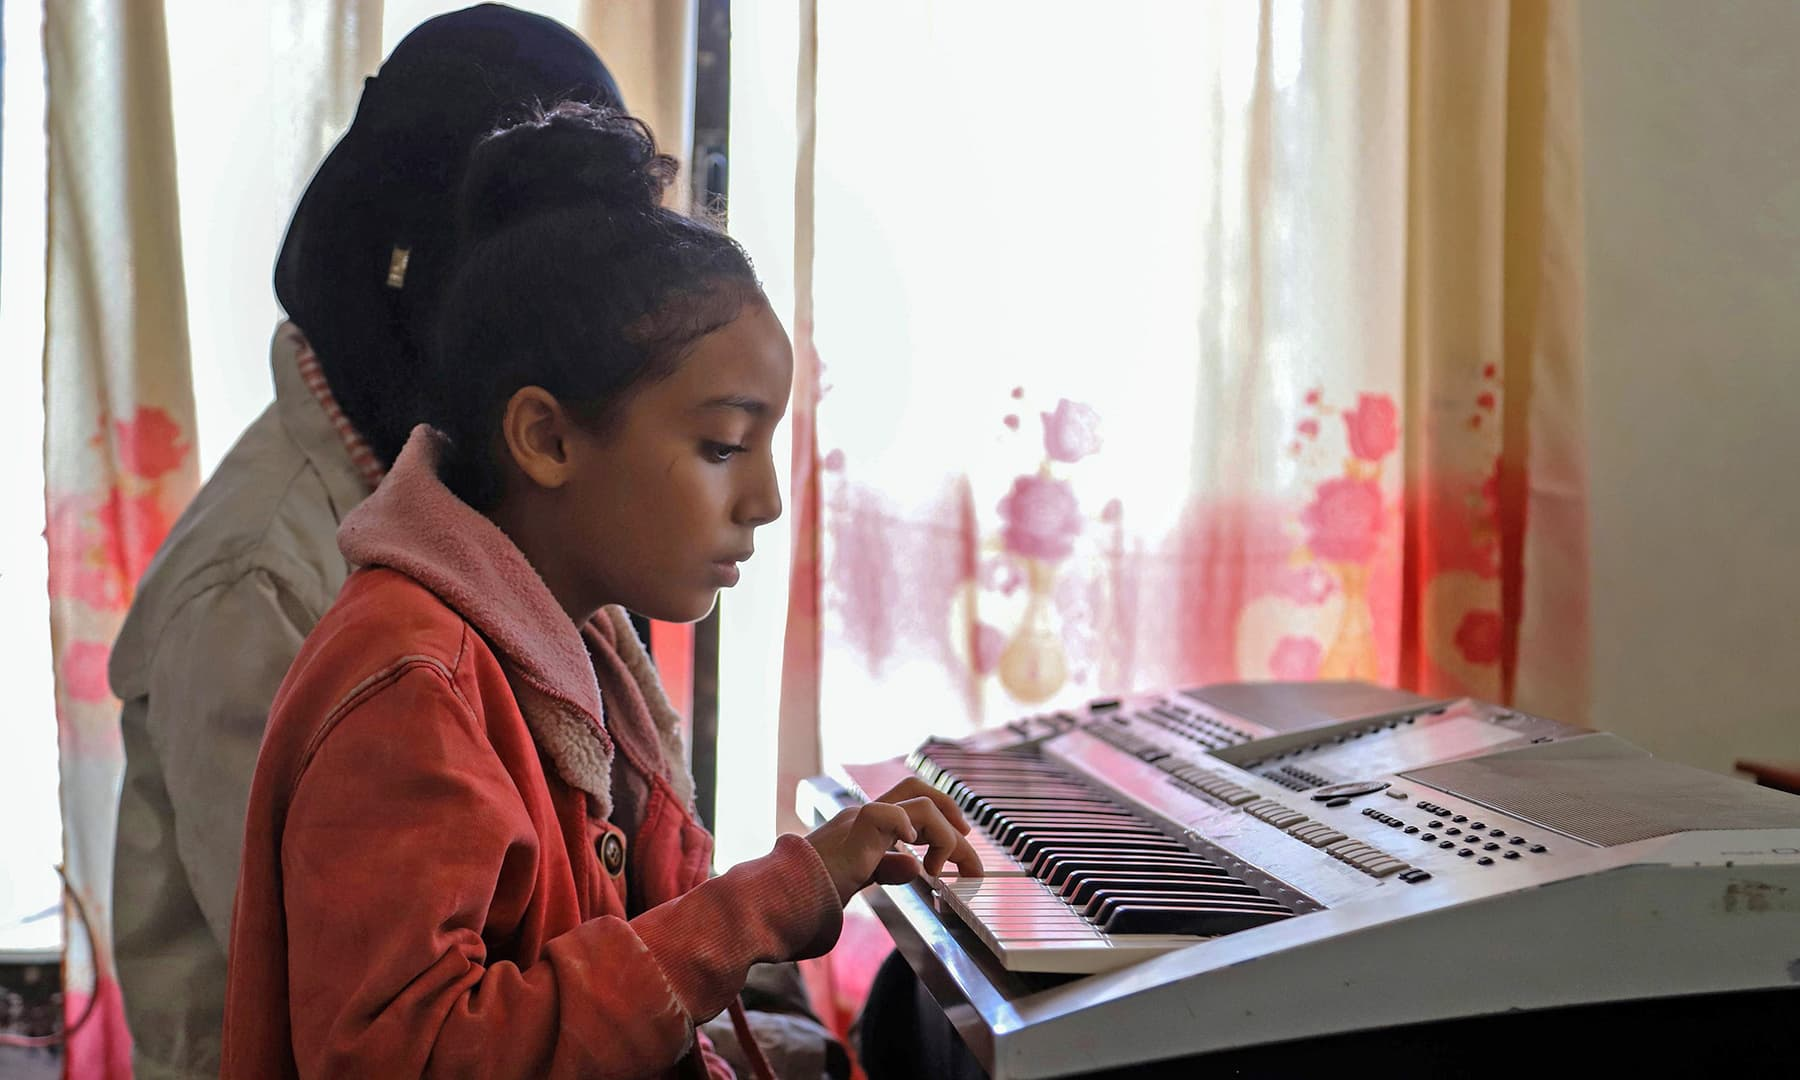 A girl finding reprieve from the ongoing war through piano lessons at Taez city's Al-Nawares school. — AFP